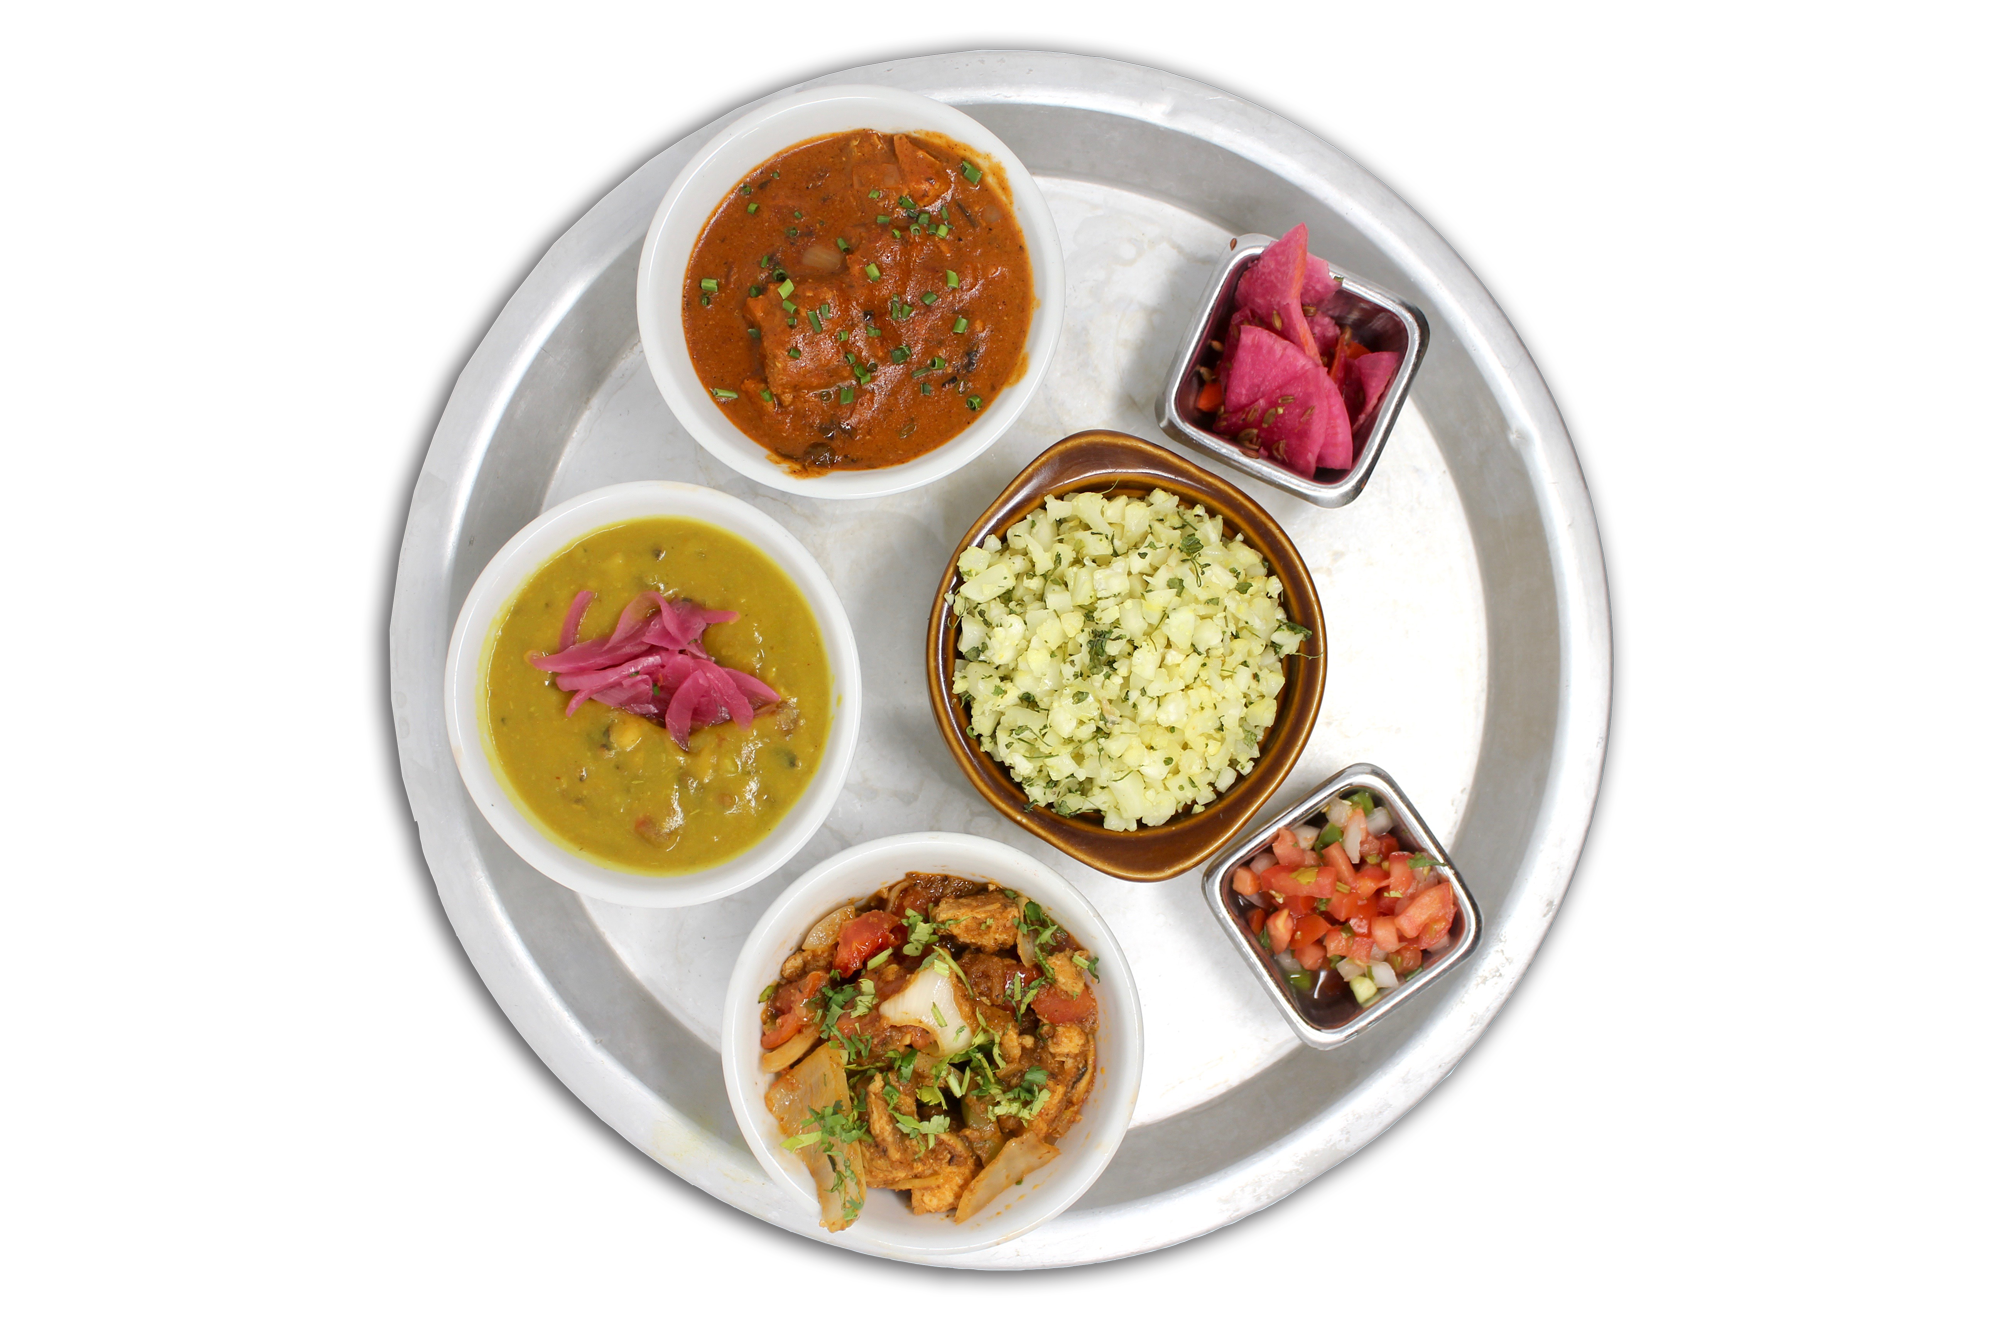 LITE THALI   riced cauliflower, daal lentils, pico & pickles  choice of any two: aloo gobi (V), butter paneer (VG), kadhai chicken or butter chicken